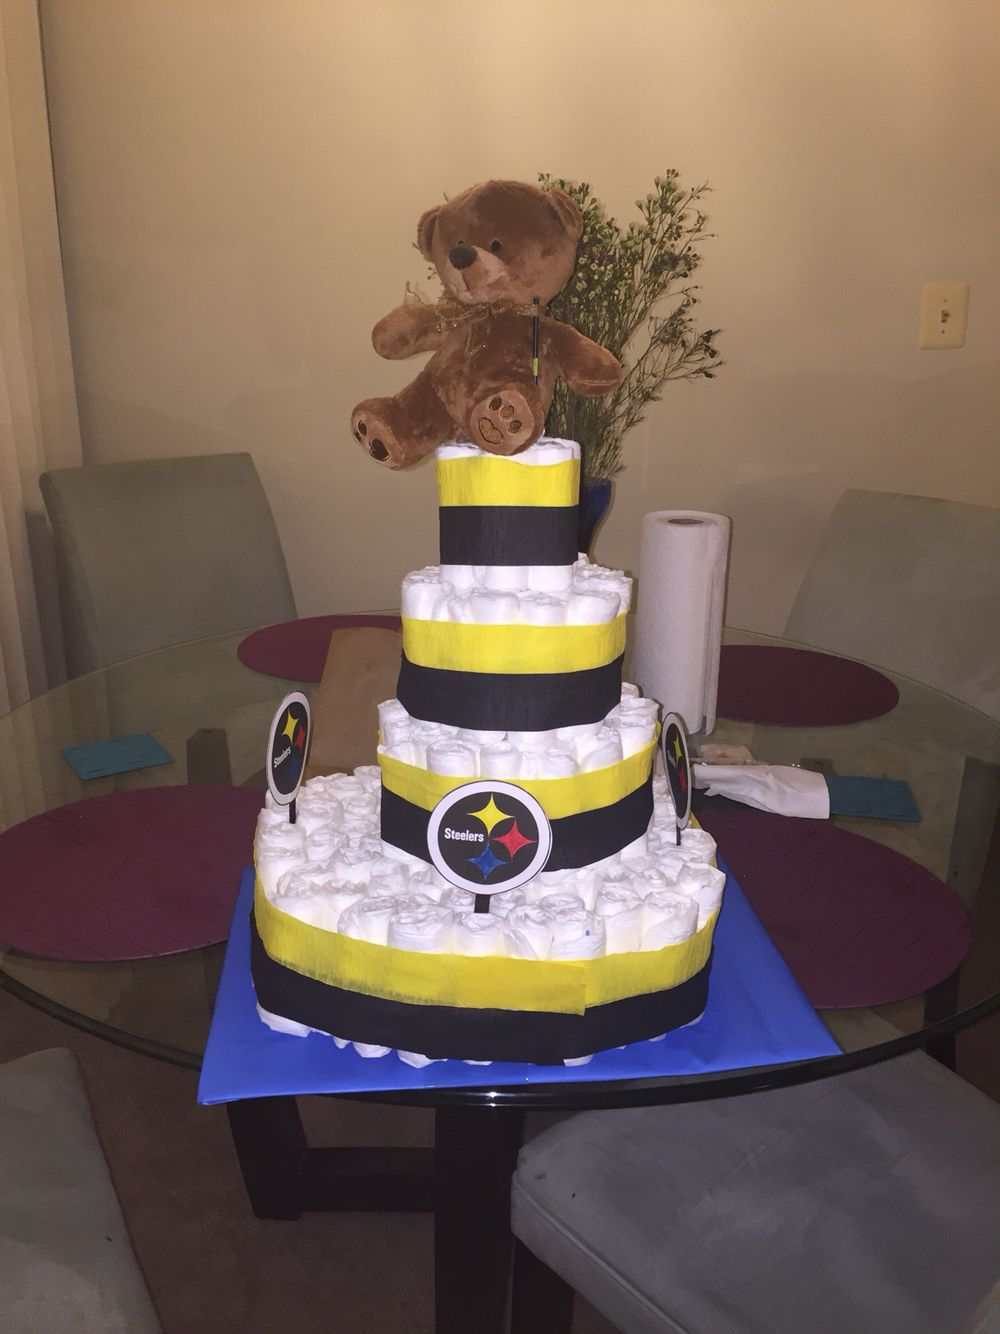 Steelers diaper cake for my friends baby! Not bad for my first diaper cake